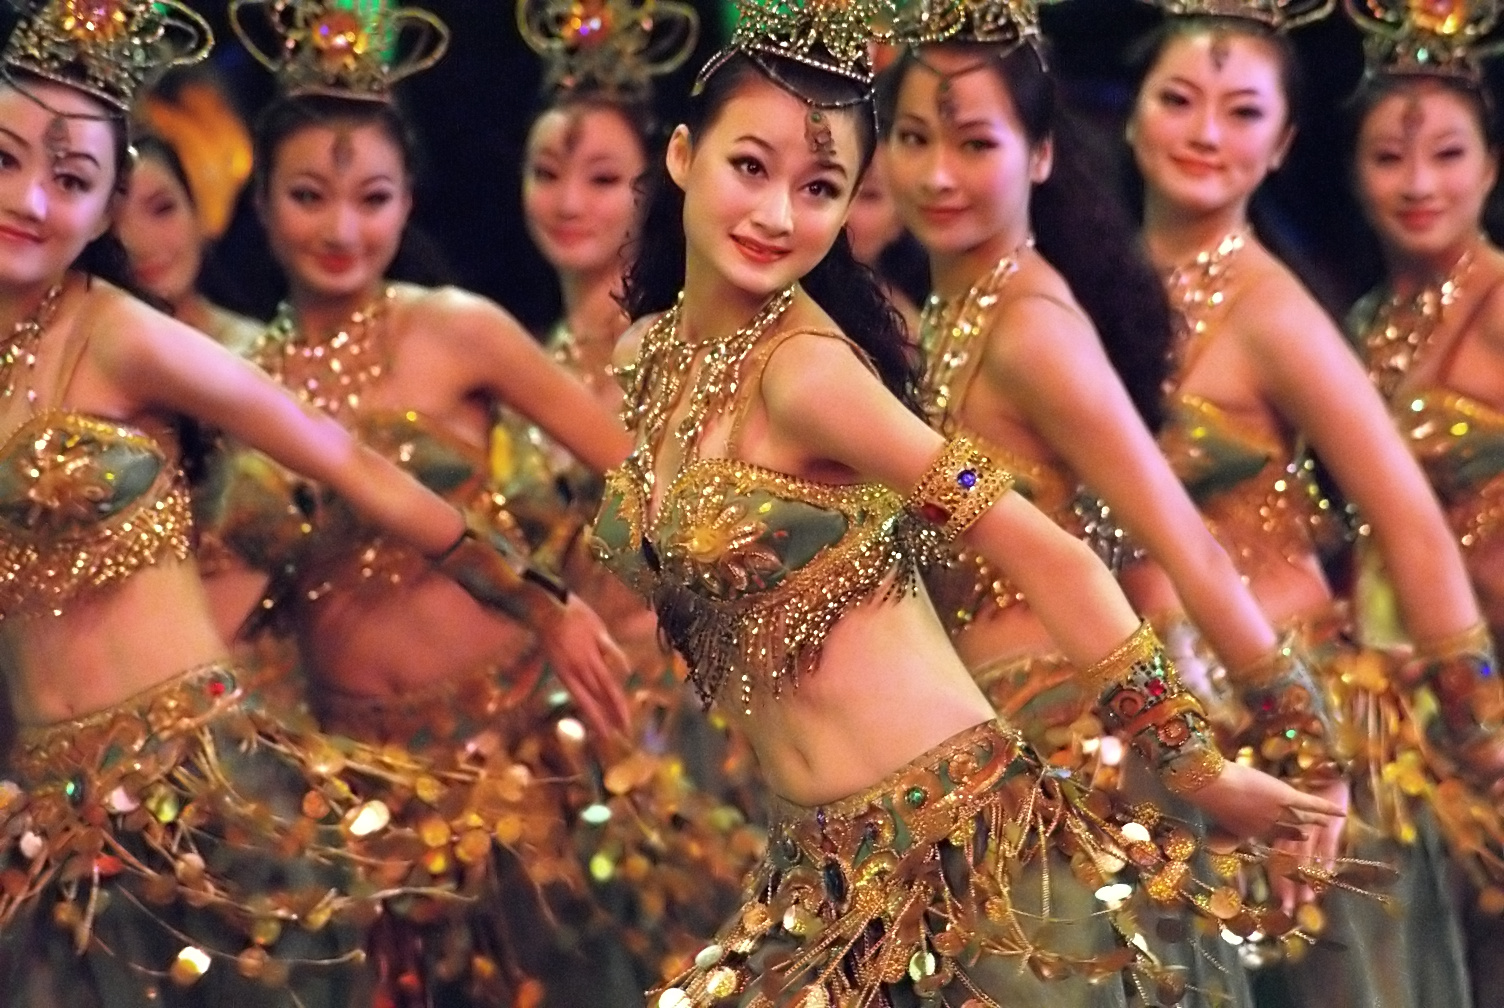 China In Asia Sightseeing And Landmarks Thousand Wonders